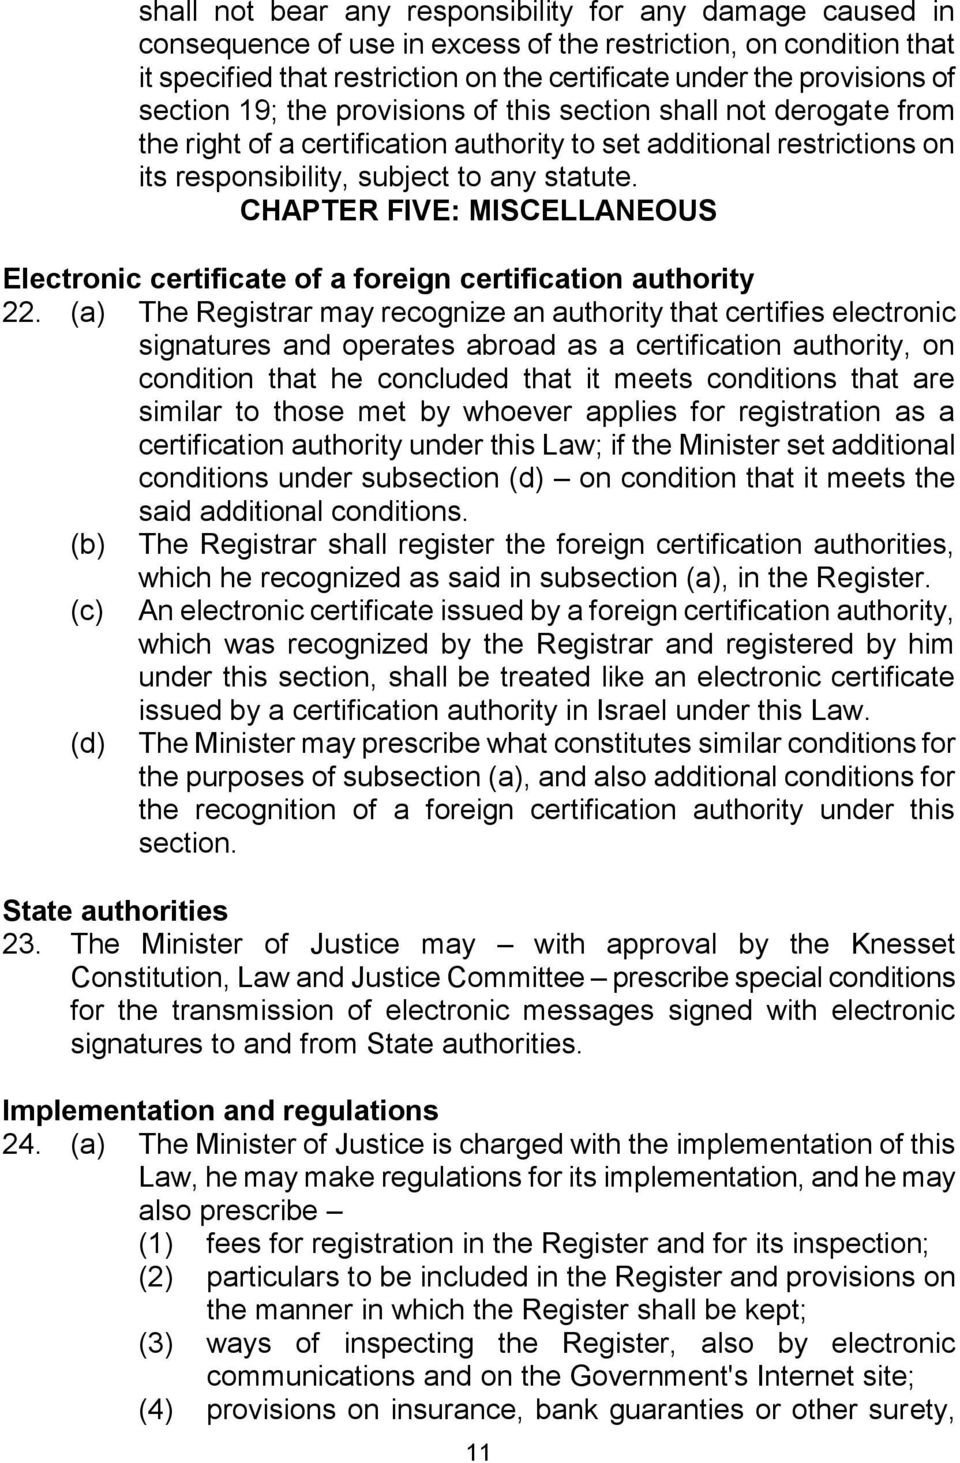 CHAPTER FIVE: MISCELLANEOUS Electronic certificate of a foreign certification authority 22.